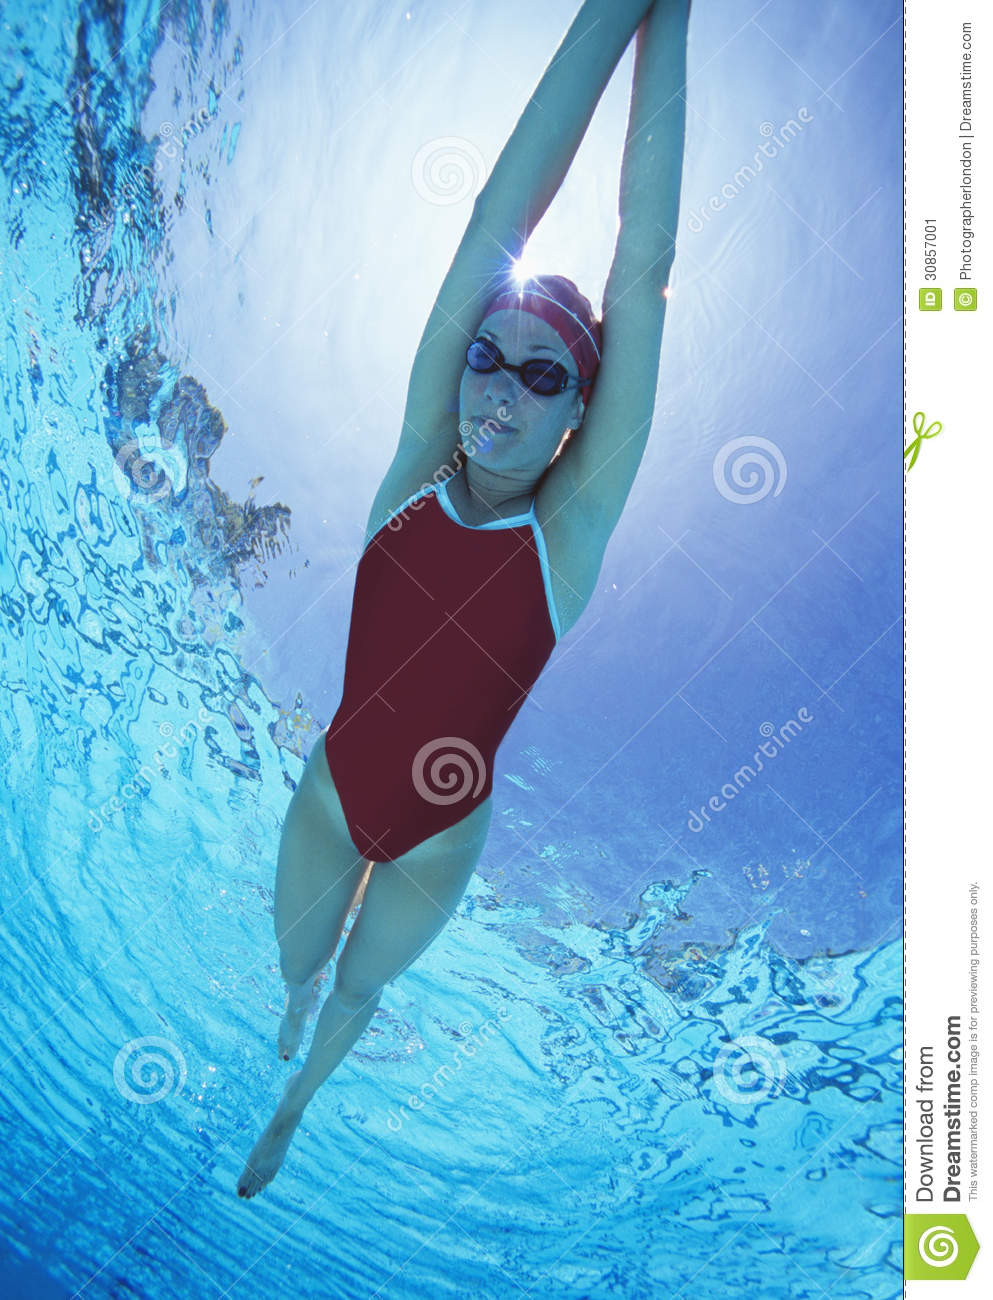 Full Length Of Female Swimmer In United States With Arms Raised Swimsuit Swimming In Pool Stock